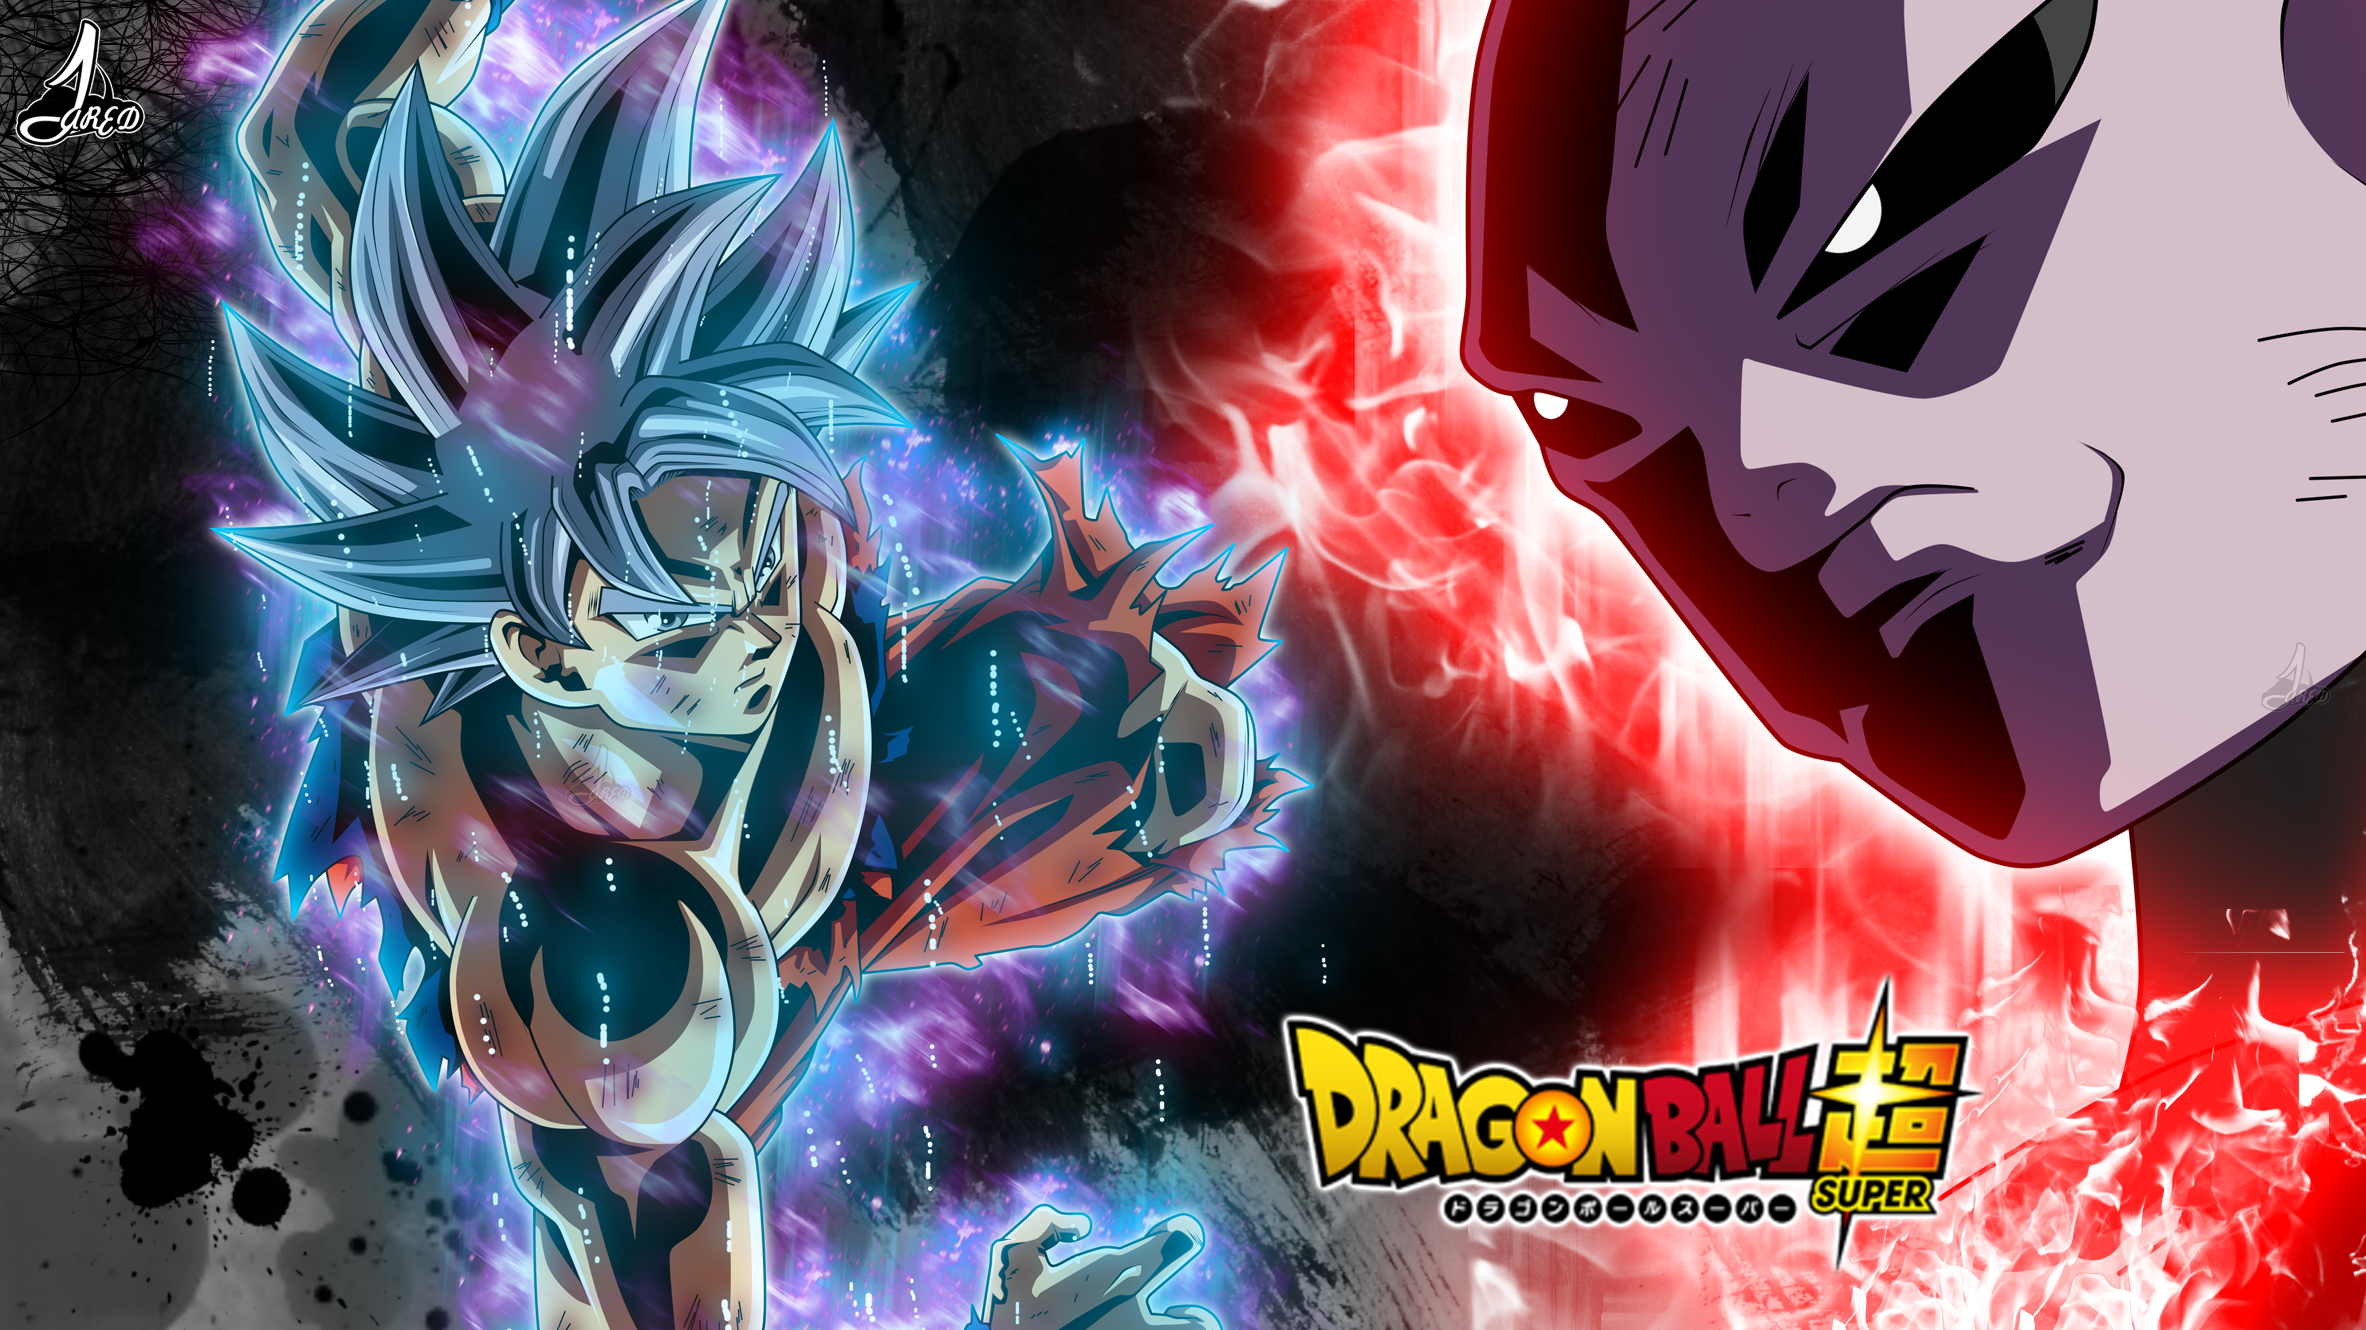 Goku Vs Jiren Hd Wallpaper Background Image 2366x1330 Id